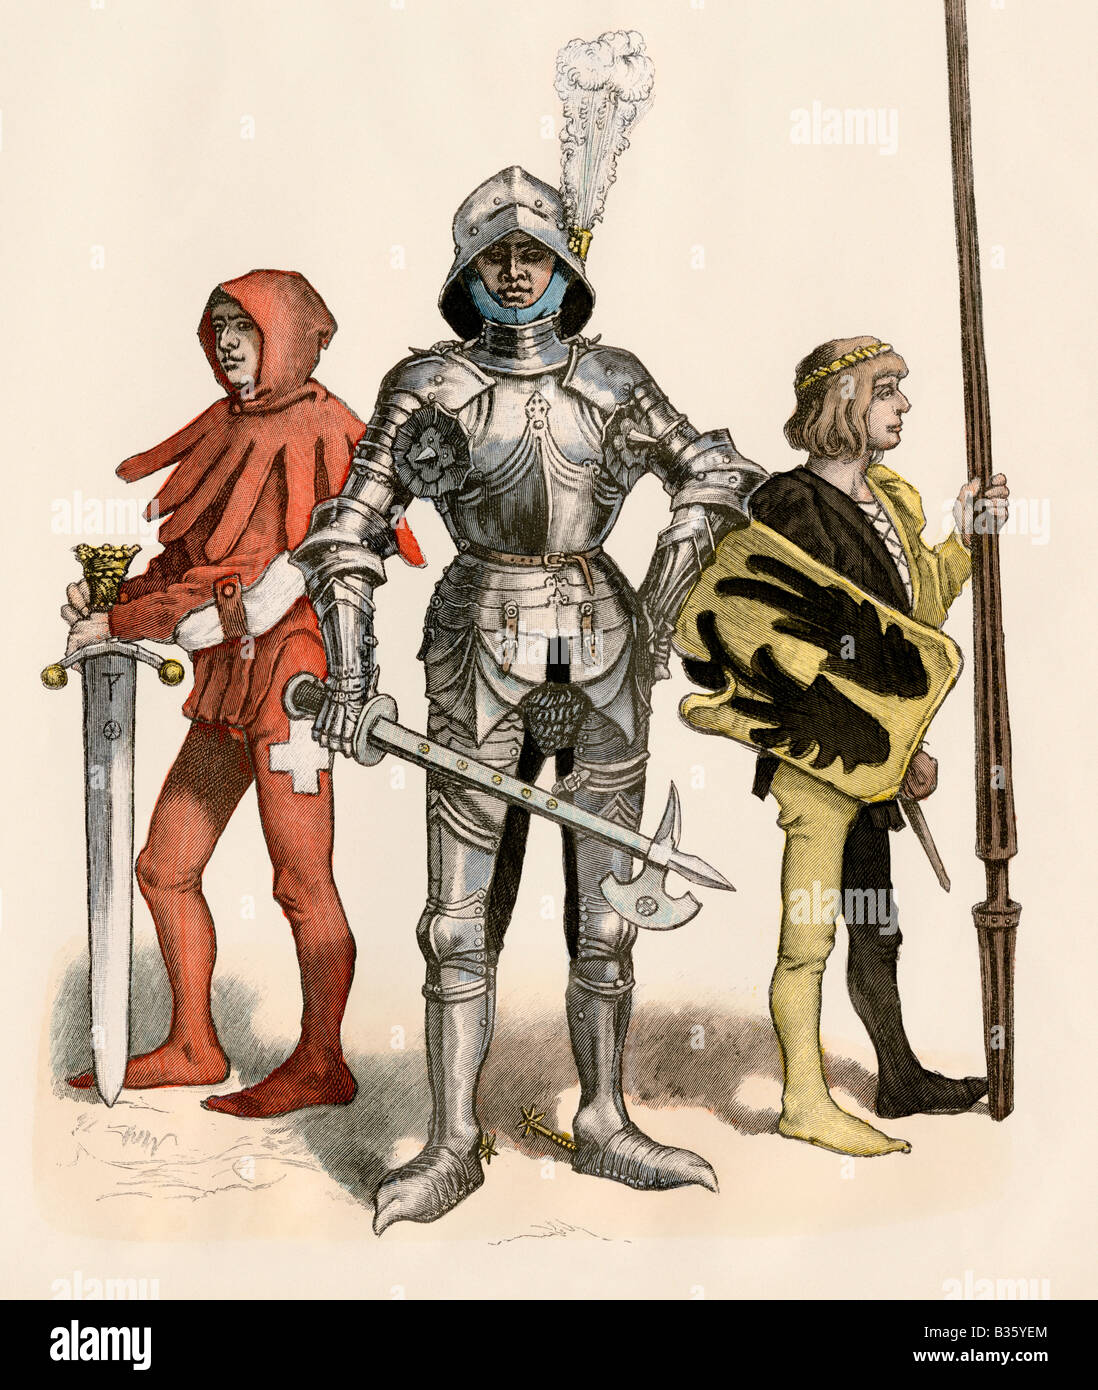 Swiss knight in field armor with his page and squire 1400s. Hand-colored print - Stock Image